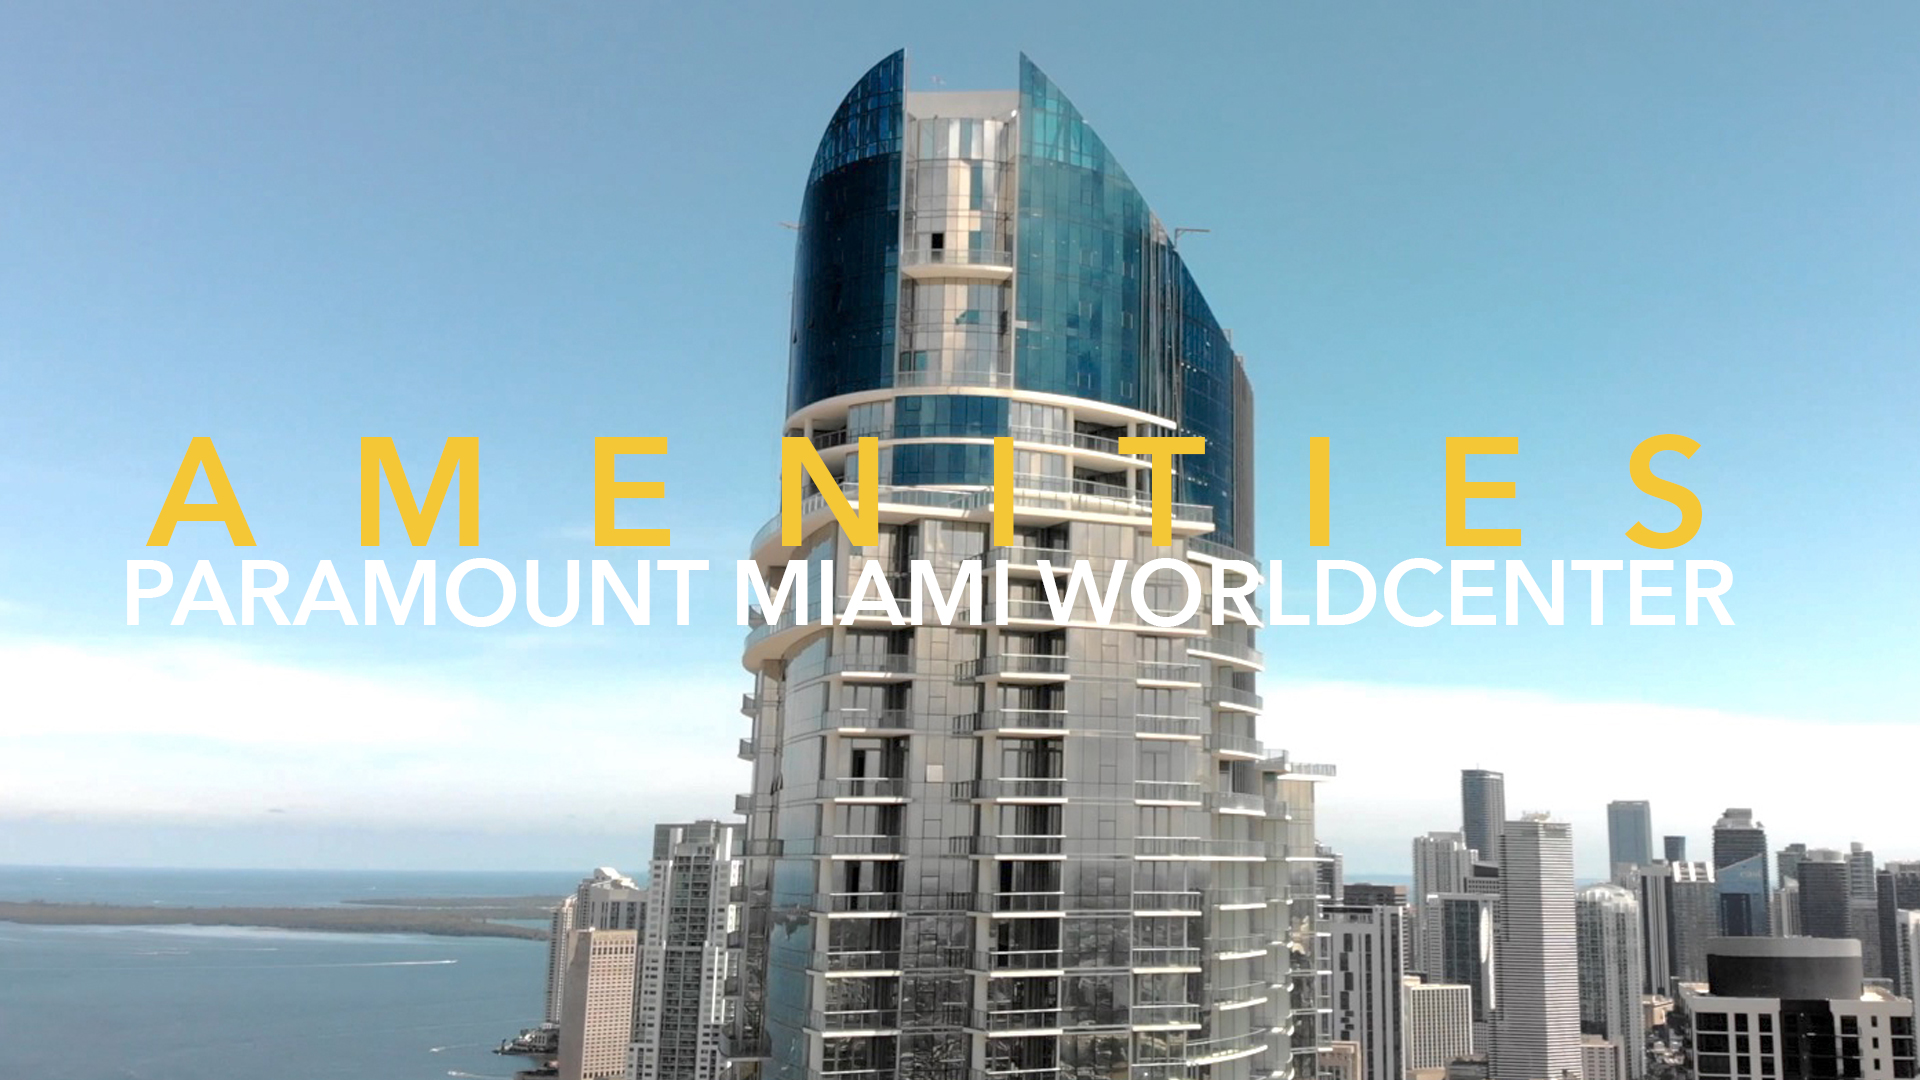 PARAMOUNT MIAMI WORLDCENTER AMENITIES 2020